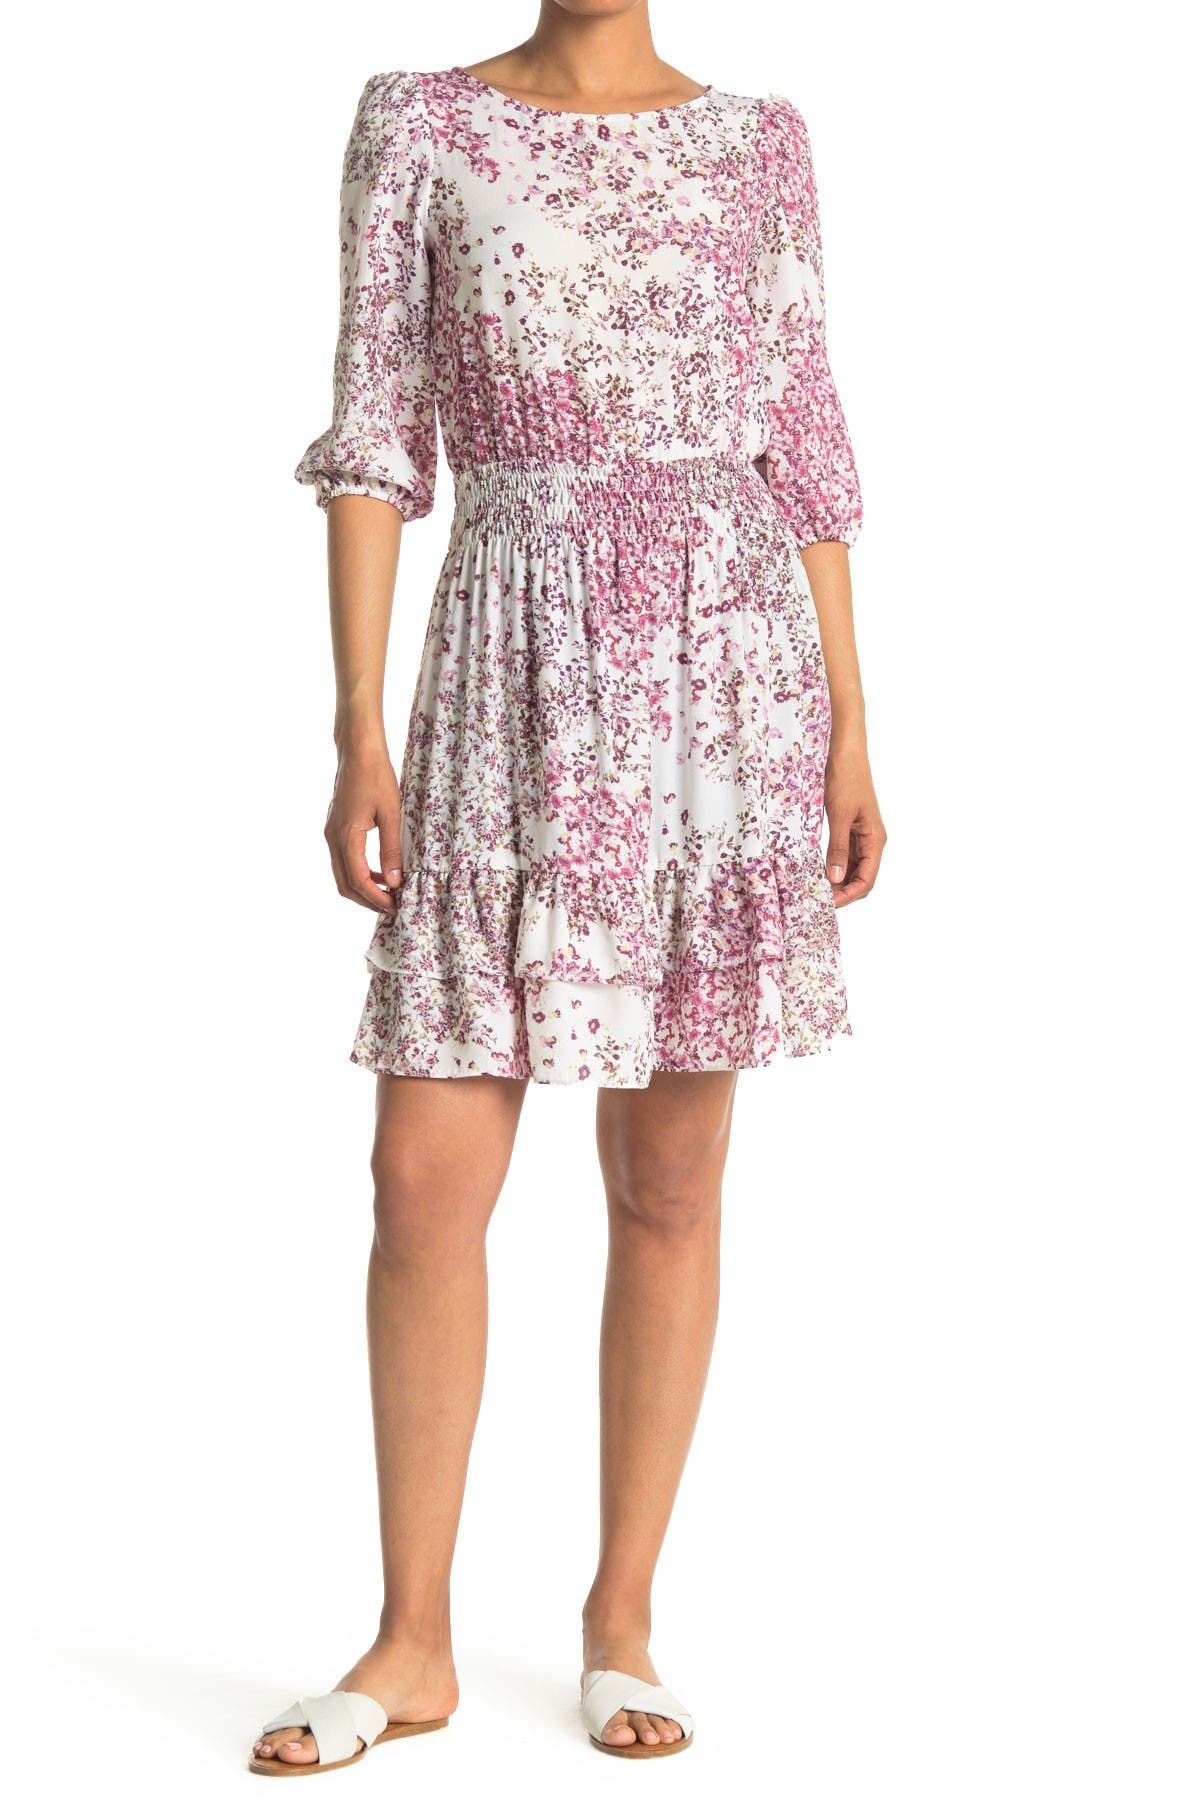 Image of Gabby Skye 3/4 Length Sleeve Floral Print Crepe Fit and Flare Dress